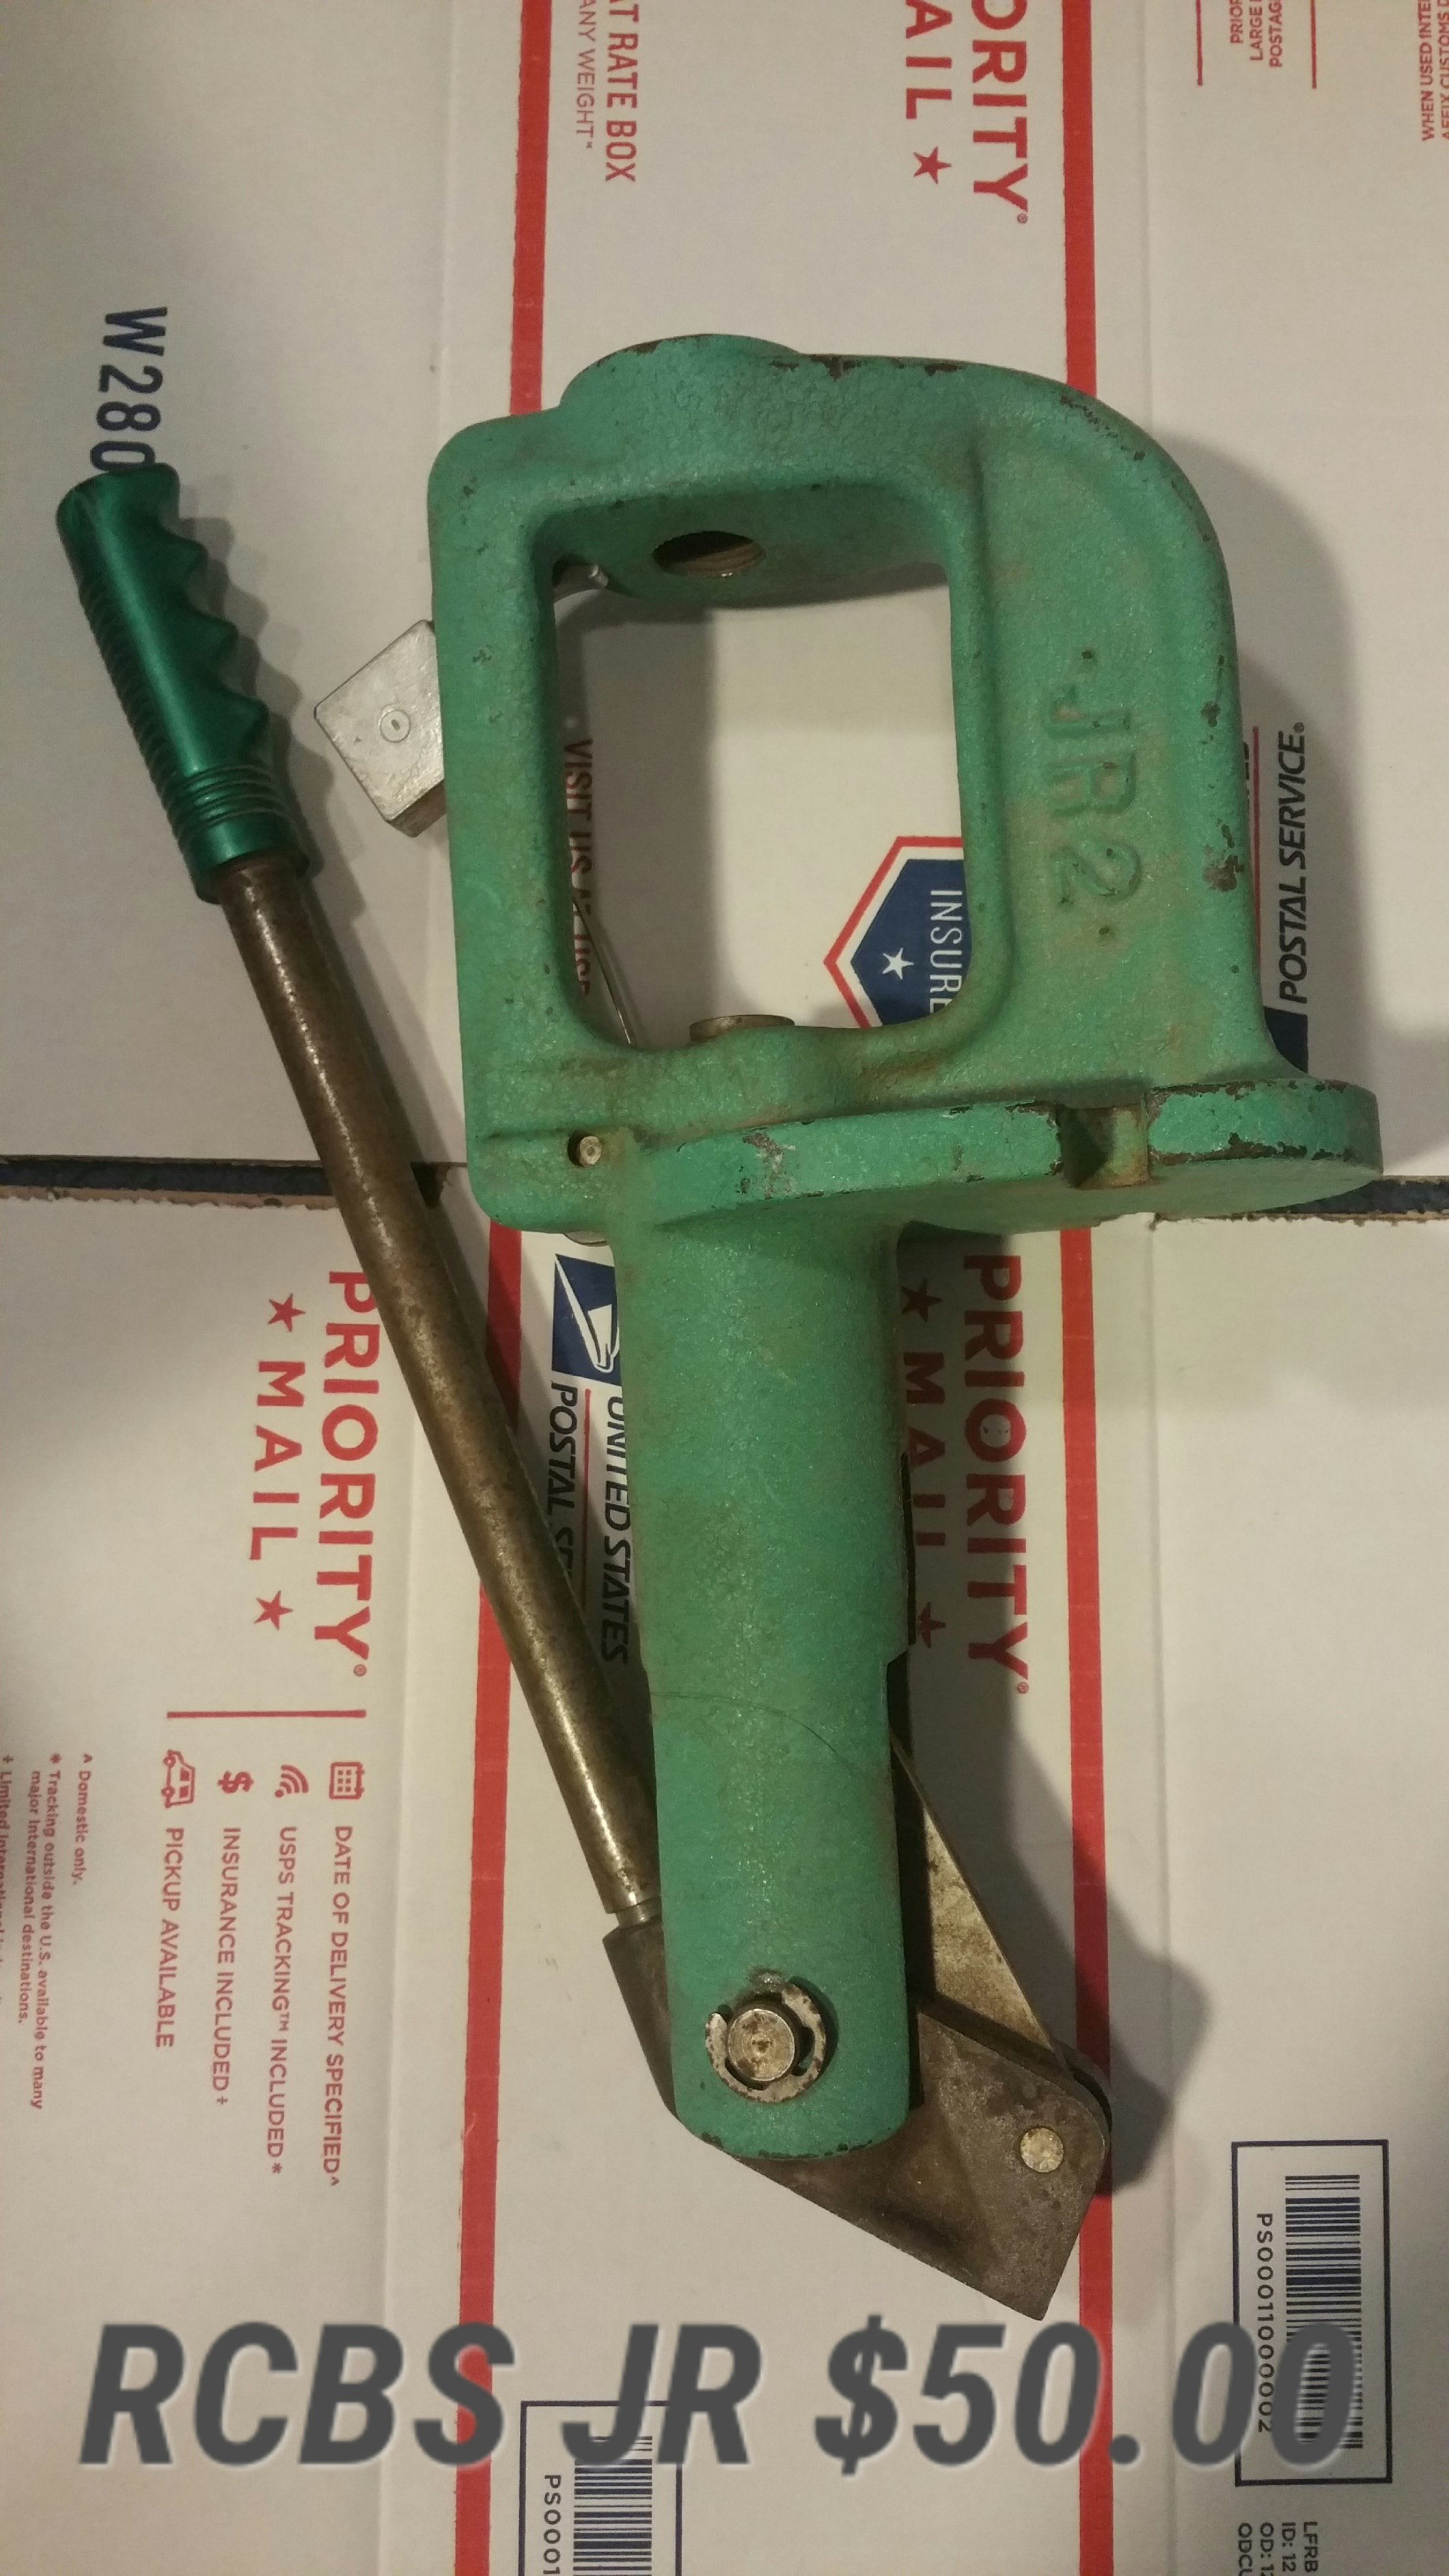 WTS Reloading presses - Classified Ads - CouesWhitetail com